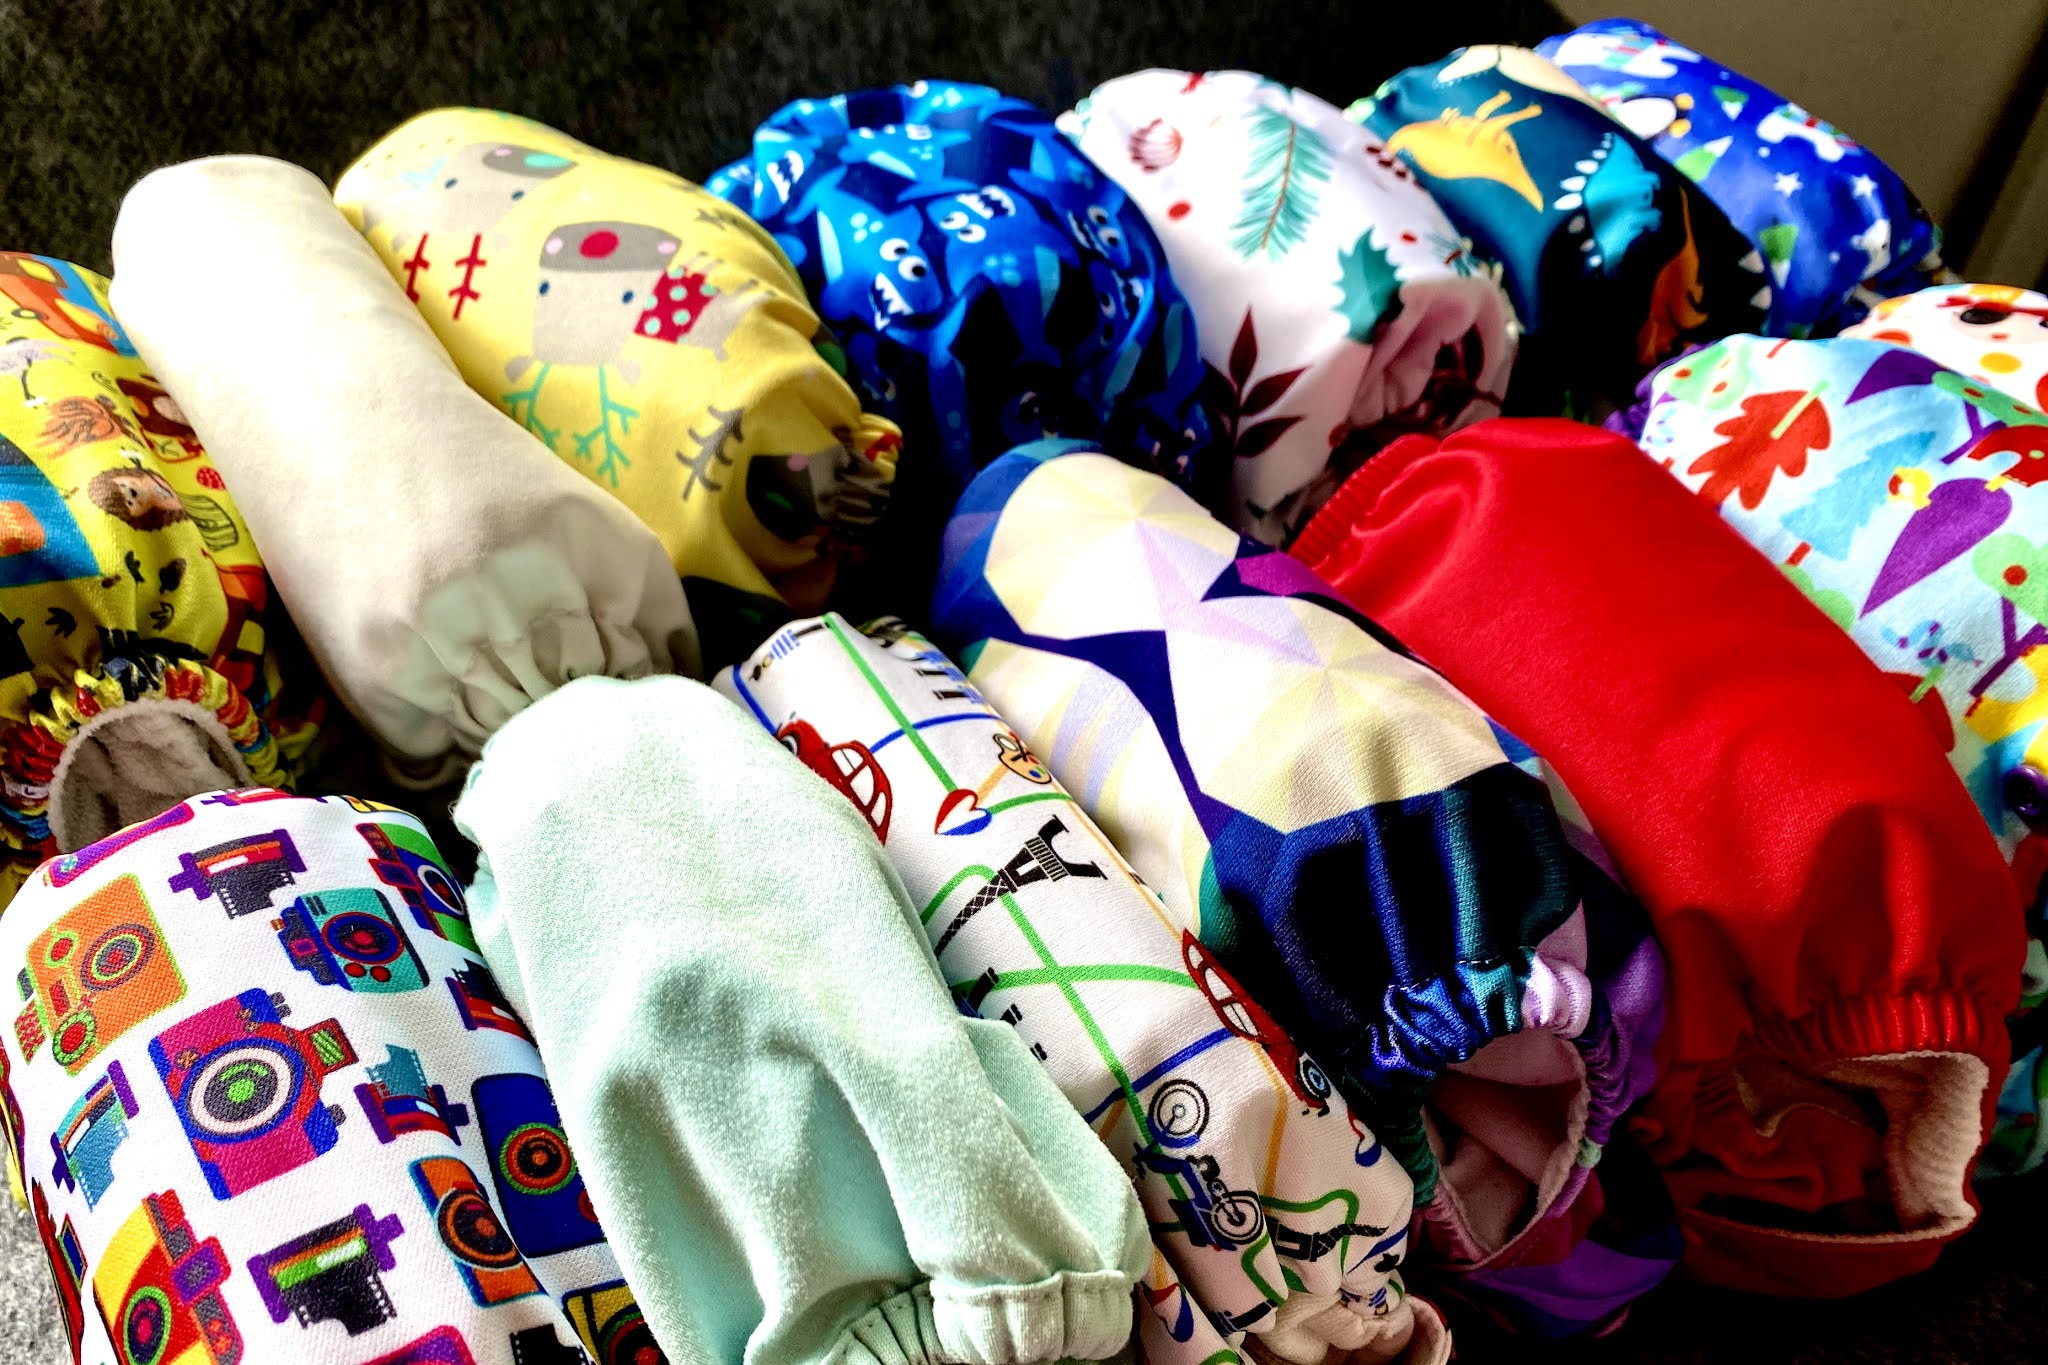 A close up of various cloth reusable nappies to illustrate getting started with cloth